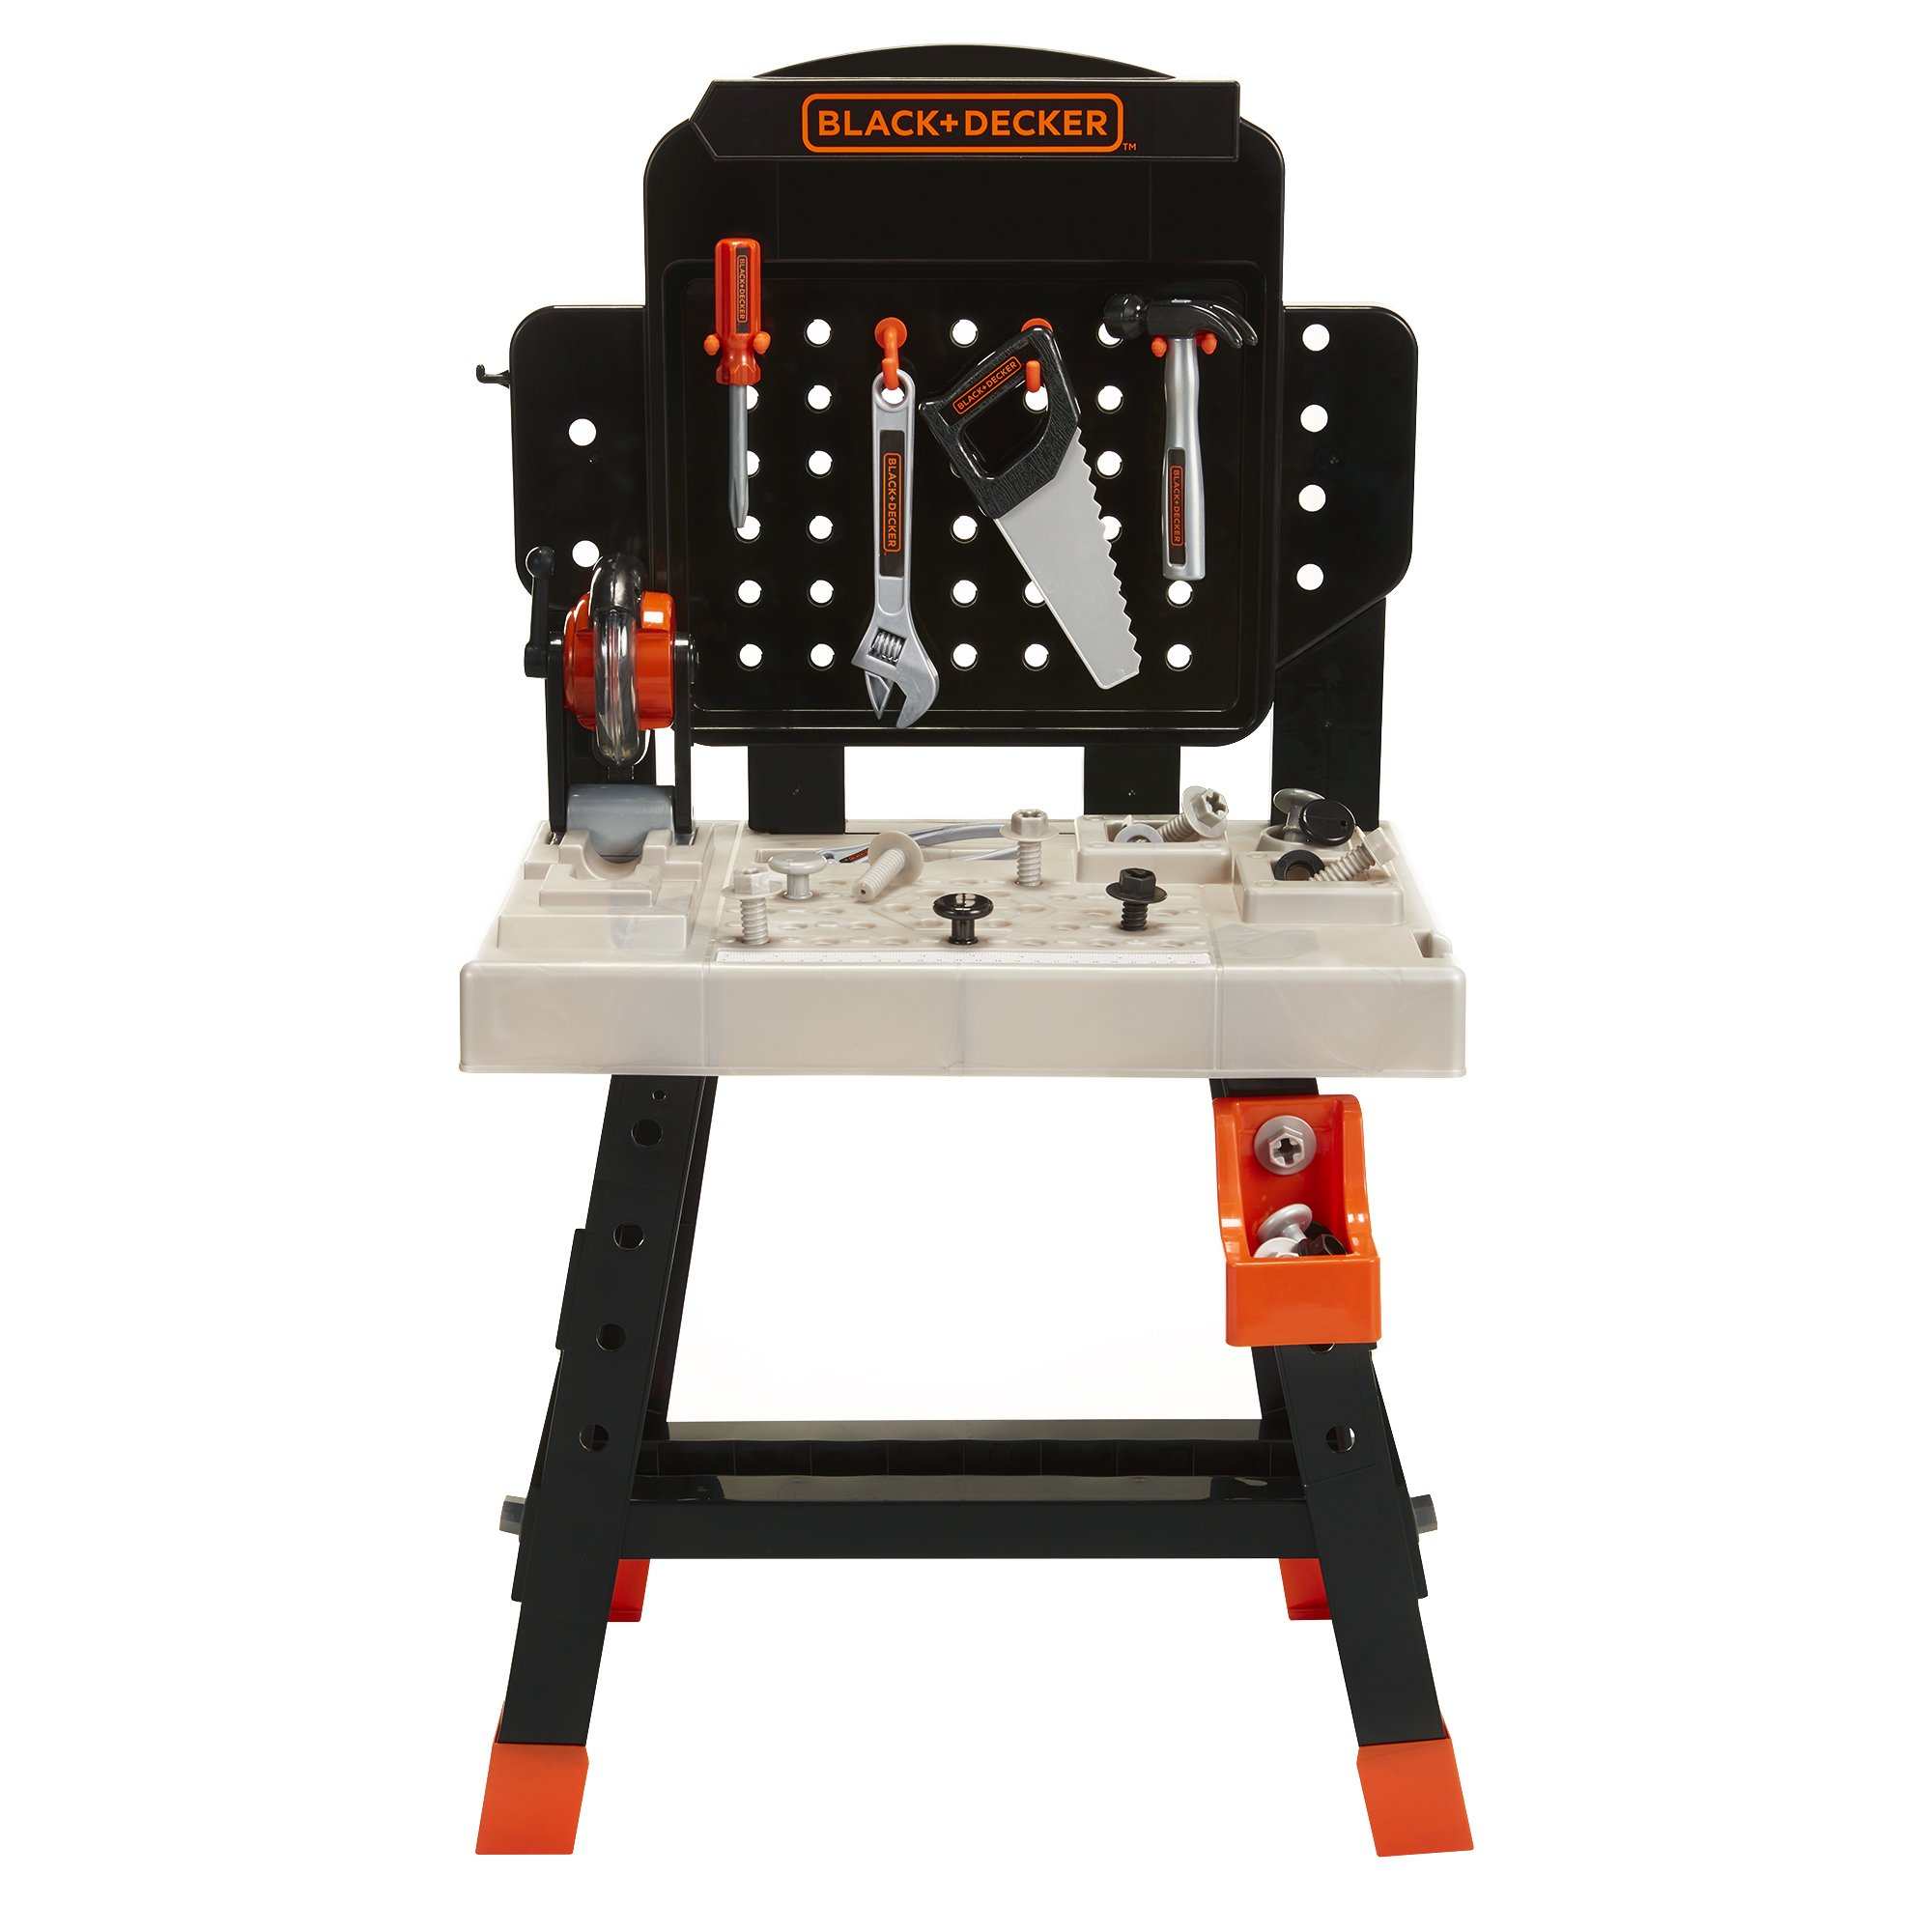 BLACK+DECKER 71382 Jr. Mega Power N' Play Workbench with Realistic Sounds! - 52 Tools & Accessories by BLACK+DECKER (Image #3)